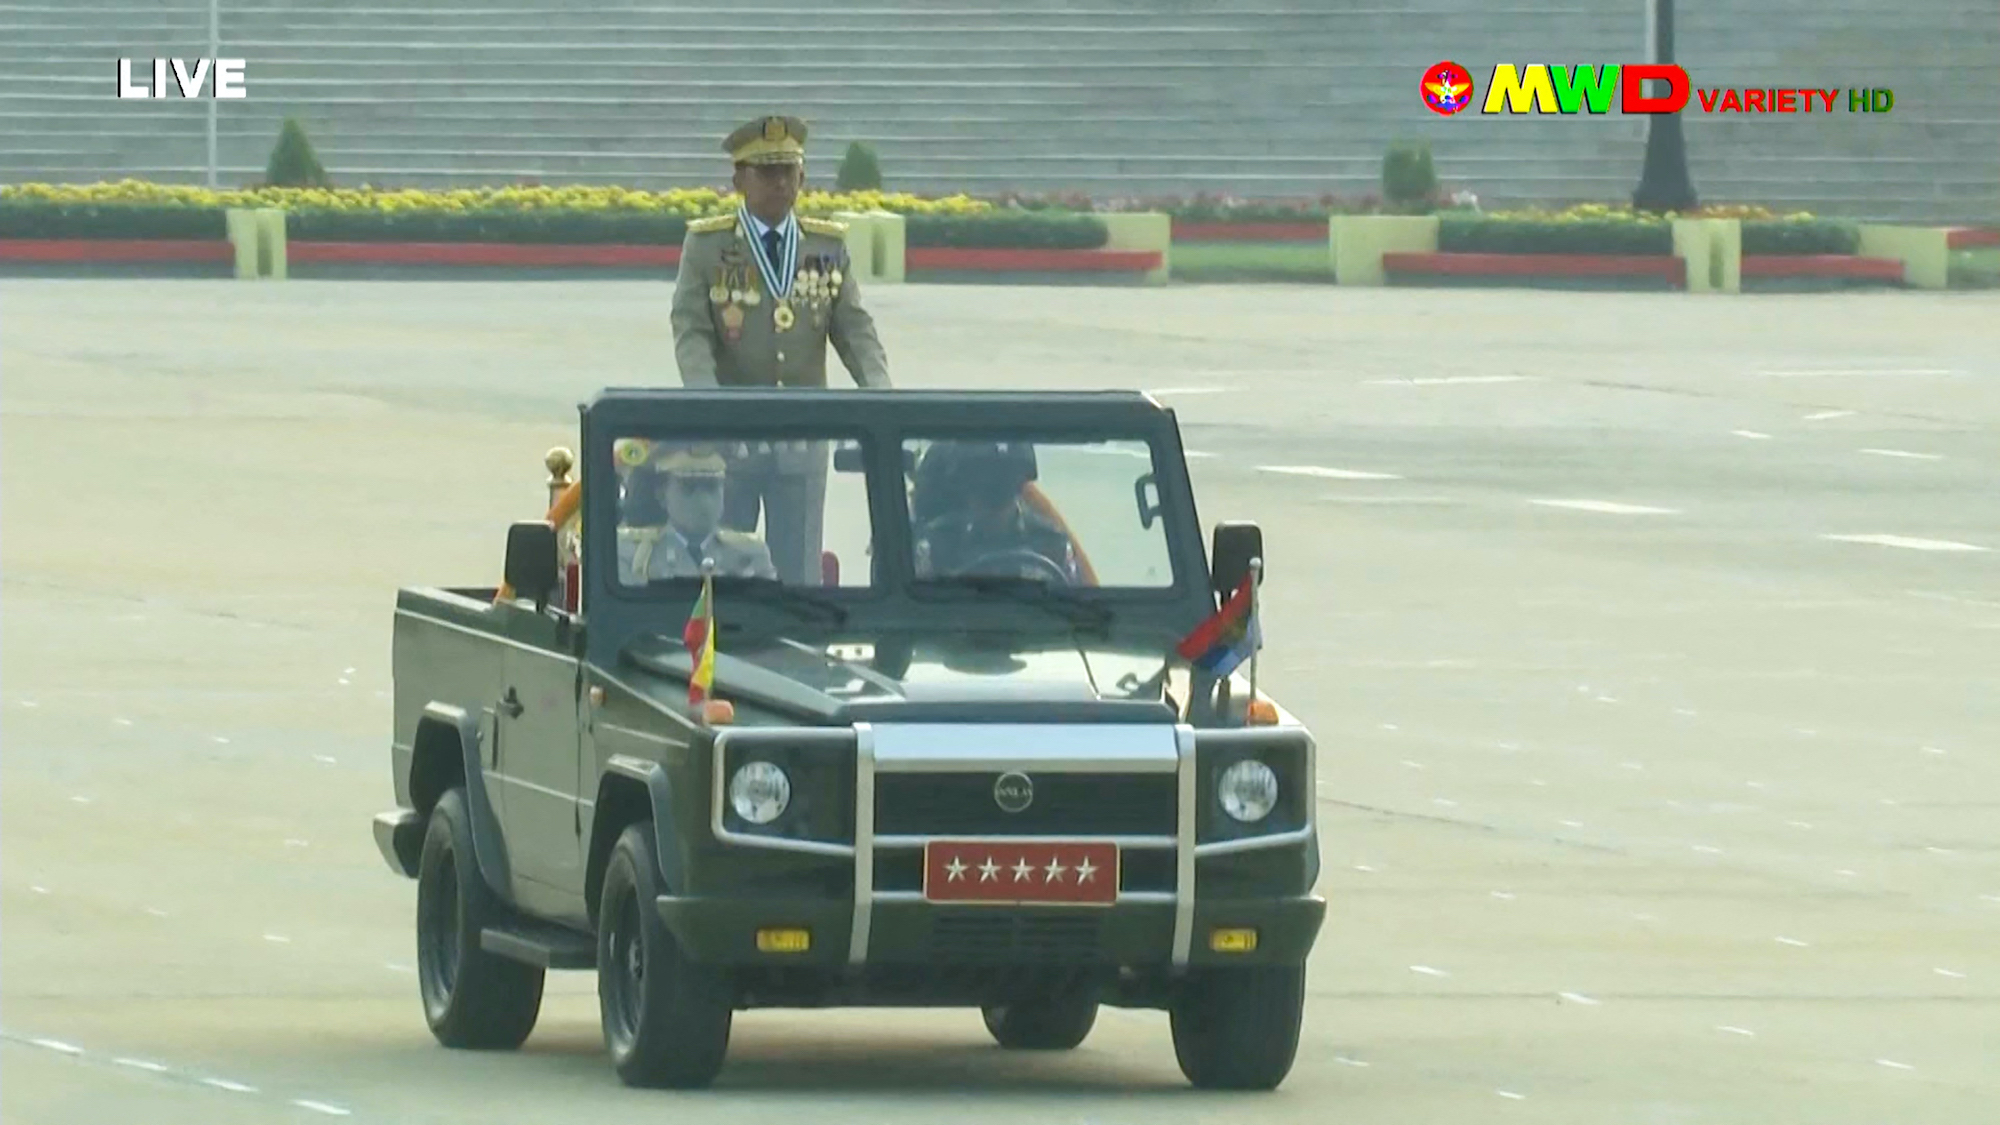 This screengrab provided via AFPTV and taken from a broadcast by Myawaddy TV on March 27 shows Tatmadaw chief Senior General Min Aung Hlaing attending an annual Armed Forces Day parade in Nay Pyi Taw. (AFP/Myawaddy TV)